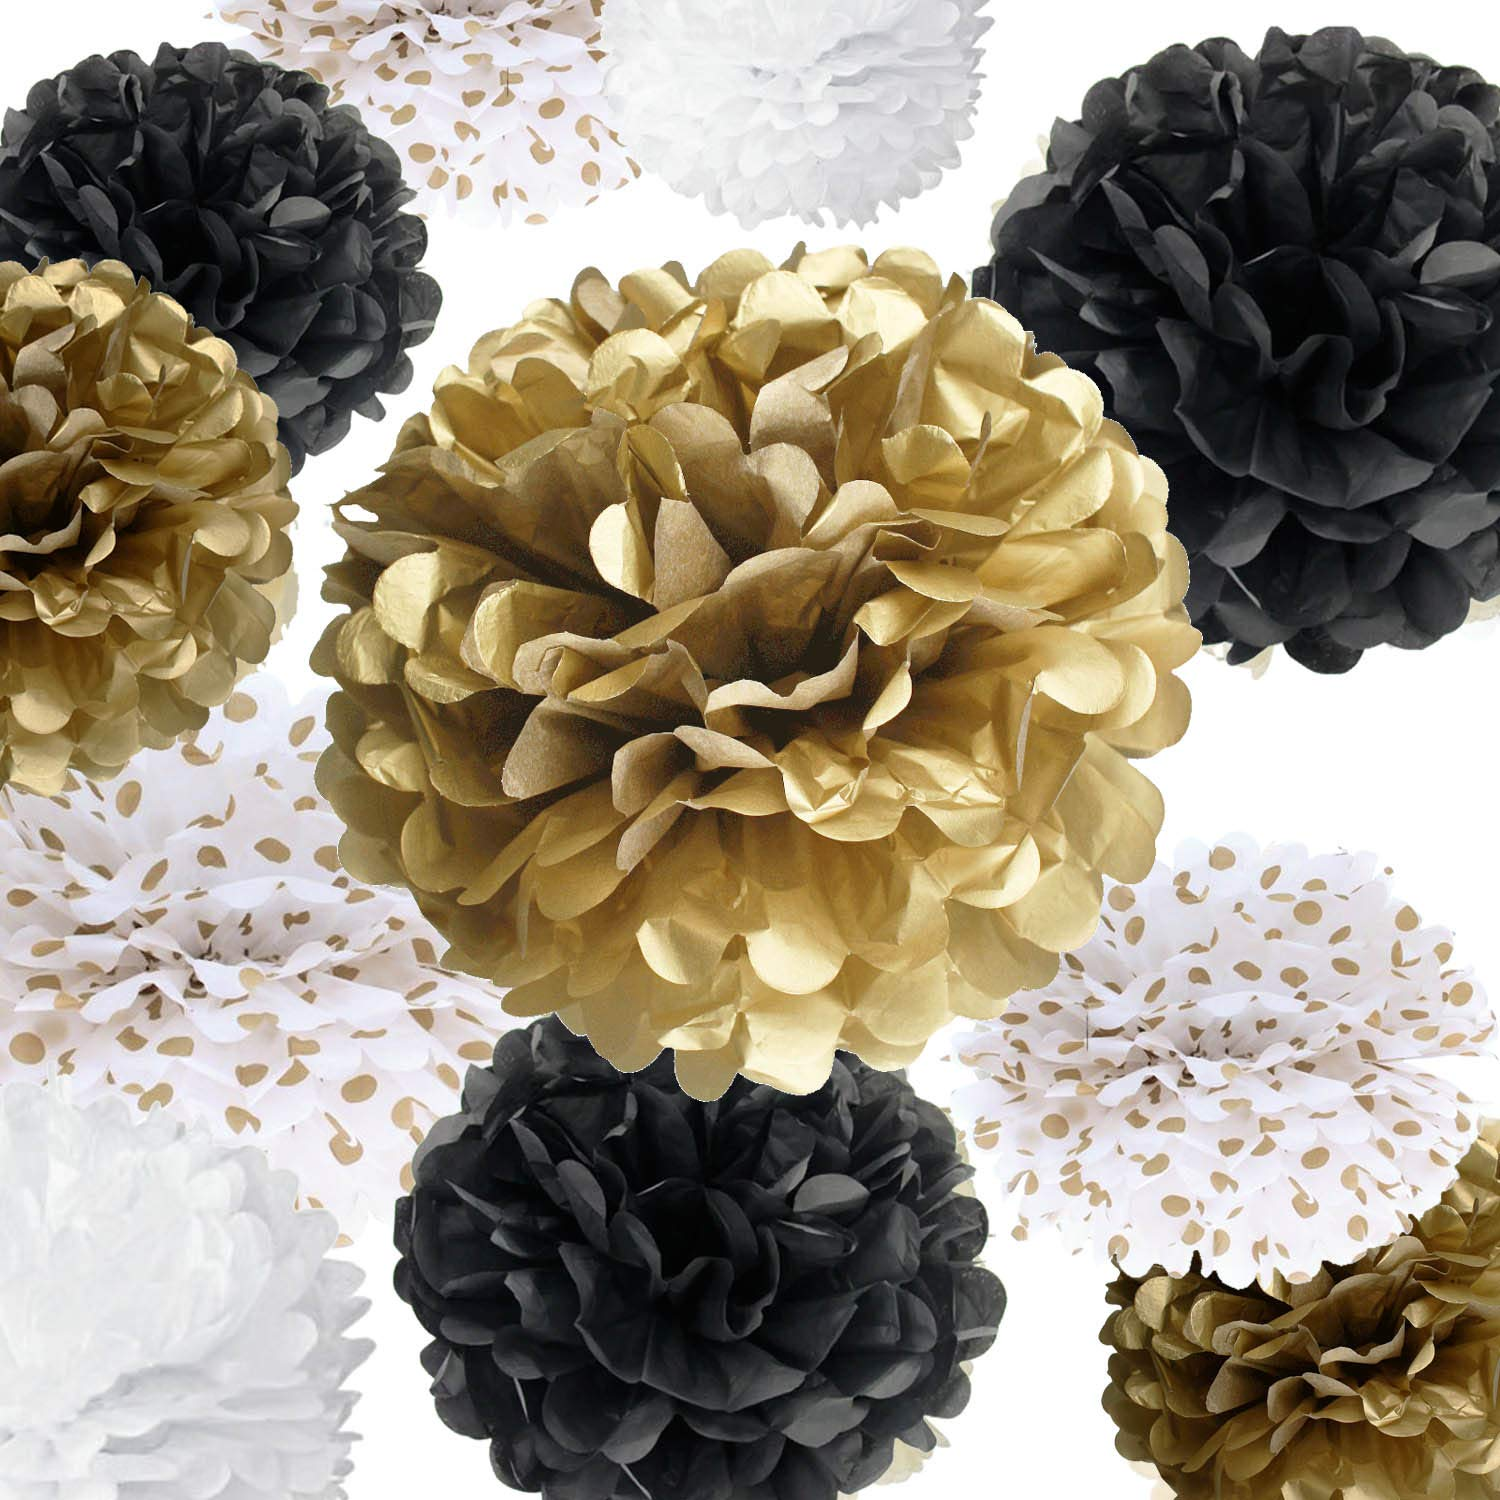 Vidal Crafts 20 Pcs Party Tissue Paper Pom Poms Kit 14'', 10'', 8'', 6'' Paper Flowers for Wedding, Birthday, Anniversary, Retirement (Black, White, Gold, Polka dot) by Vidal Crafts for a perfect party